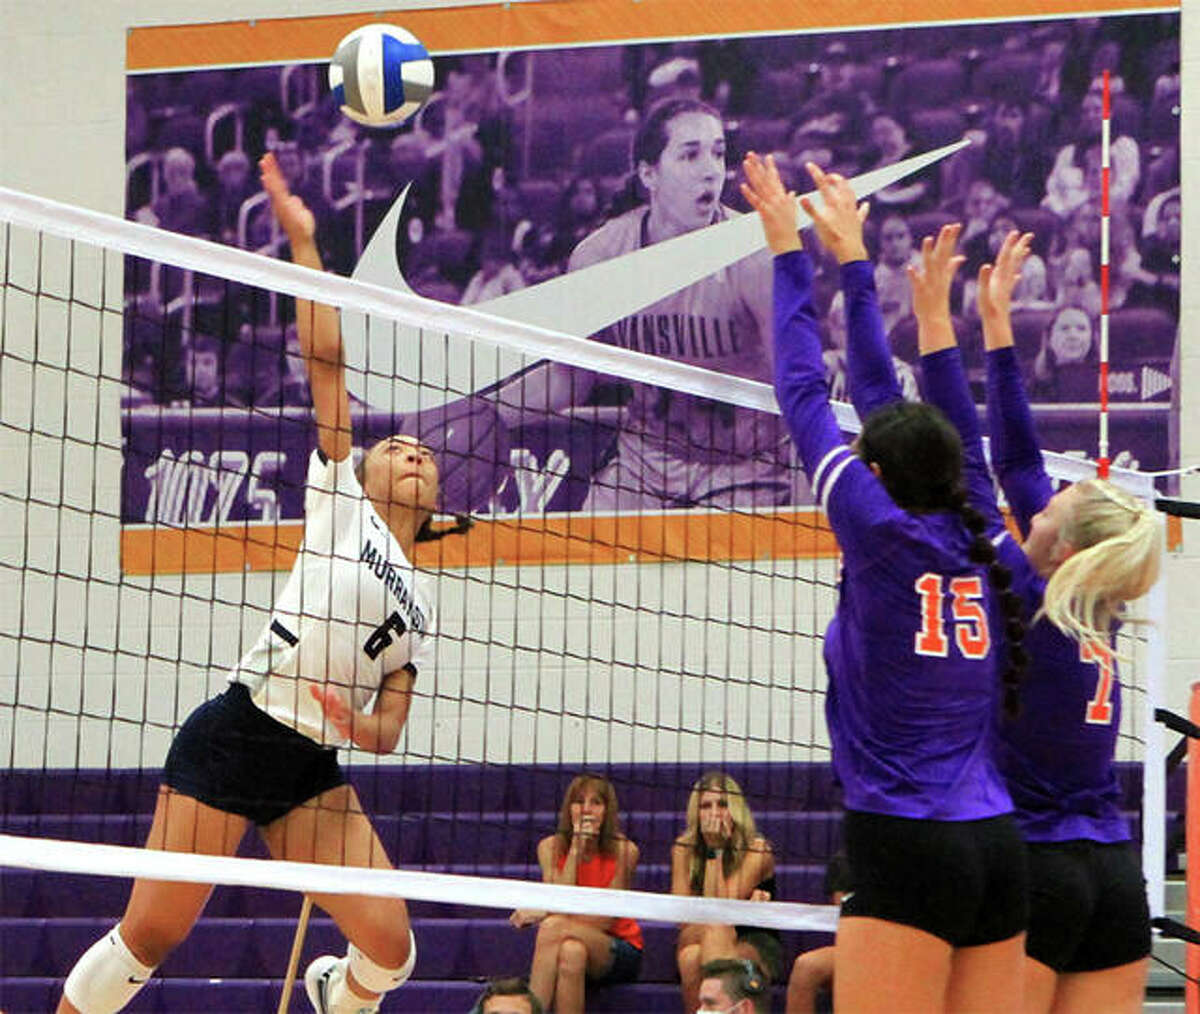 Murray State's Alexa Harris (left), a freshman from Edwardsville, goes above a double block by Evansville for an attack in a match Saturday at Evansville's tournament in Indiana.